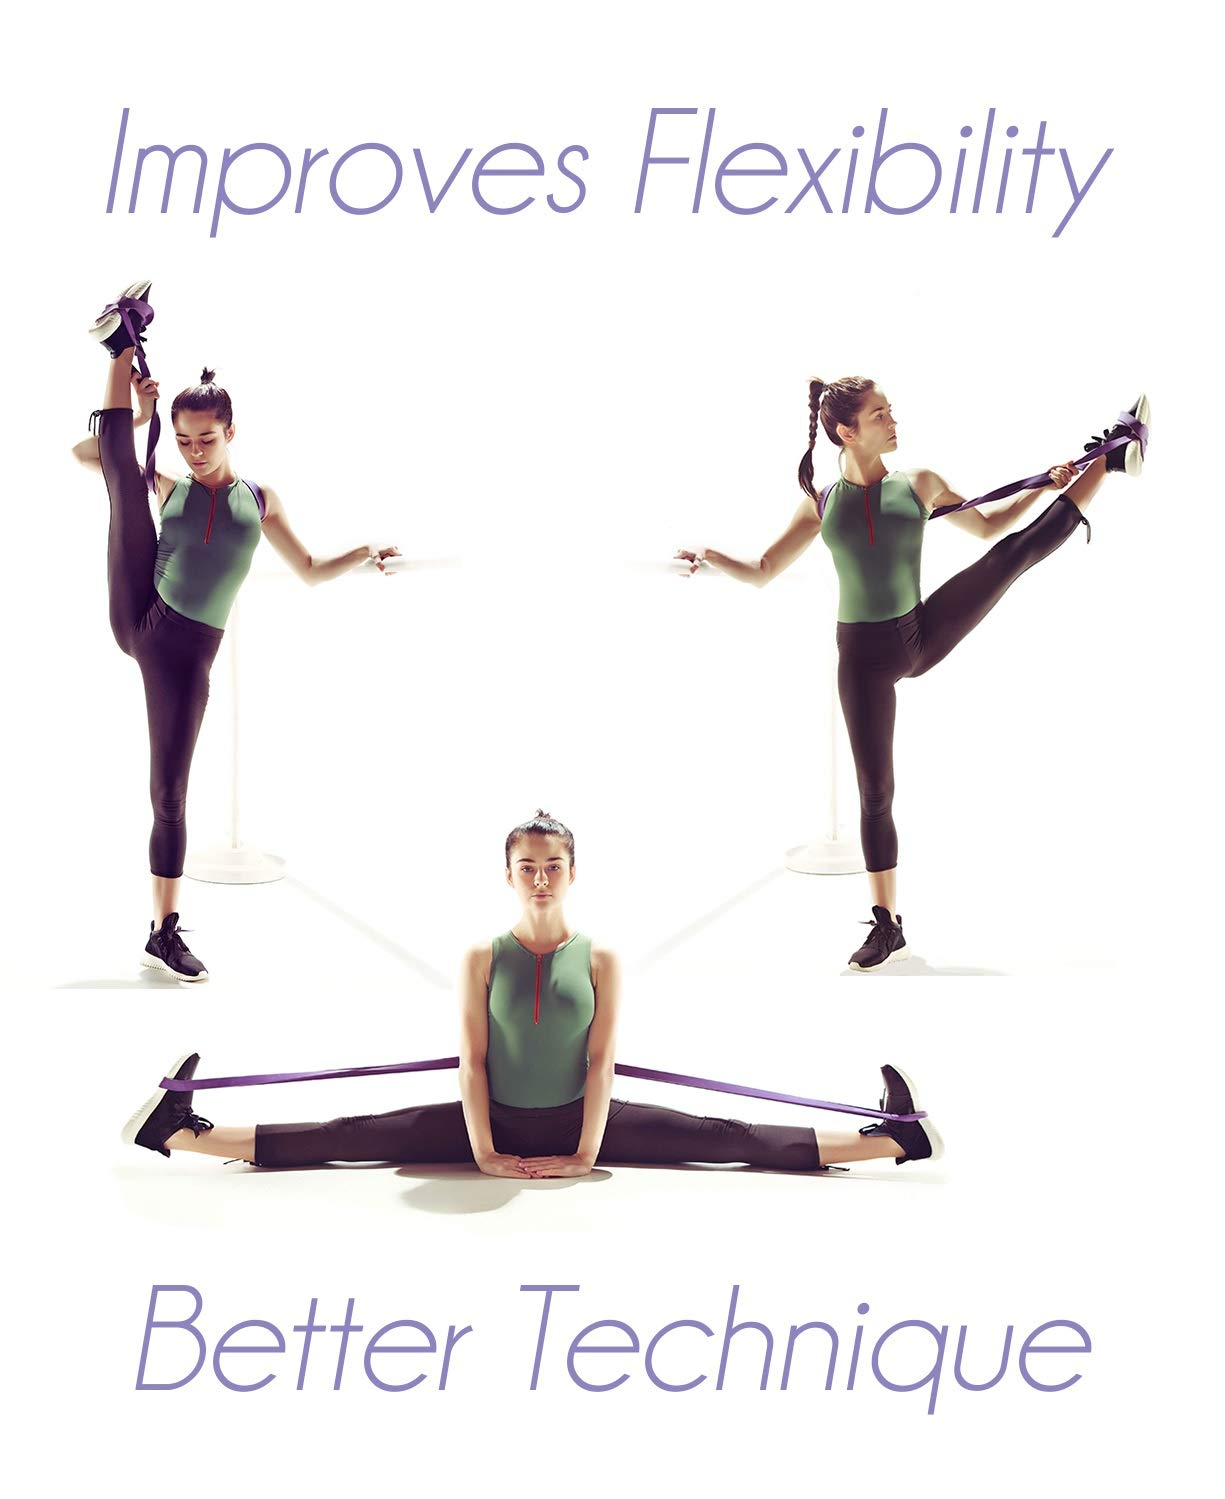 Stretch Bands for Dancers Mobility and Strength Printed Stretches and Stretching E-Guide Ballerinas and Gymnasts Shiny Bag Dance Stretch Bands for Flexibility Travel Bag